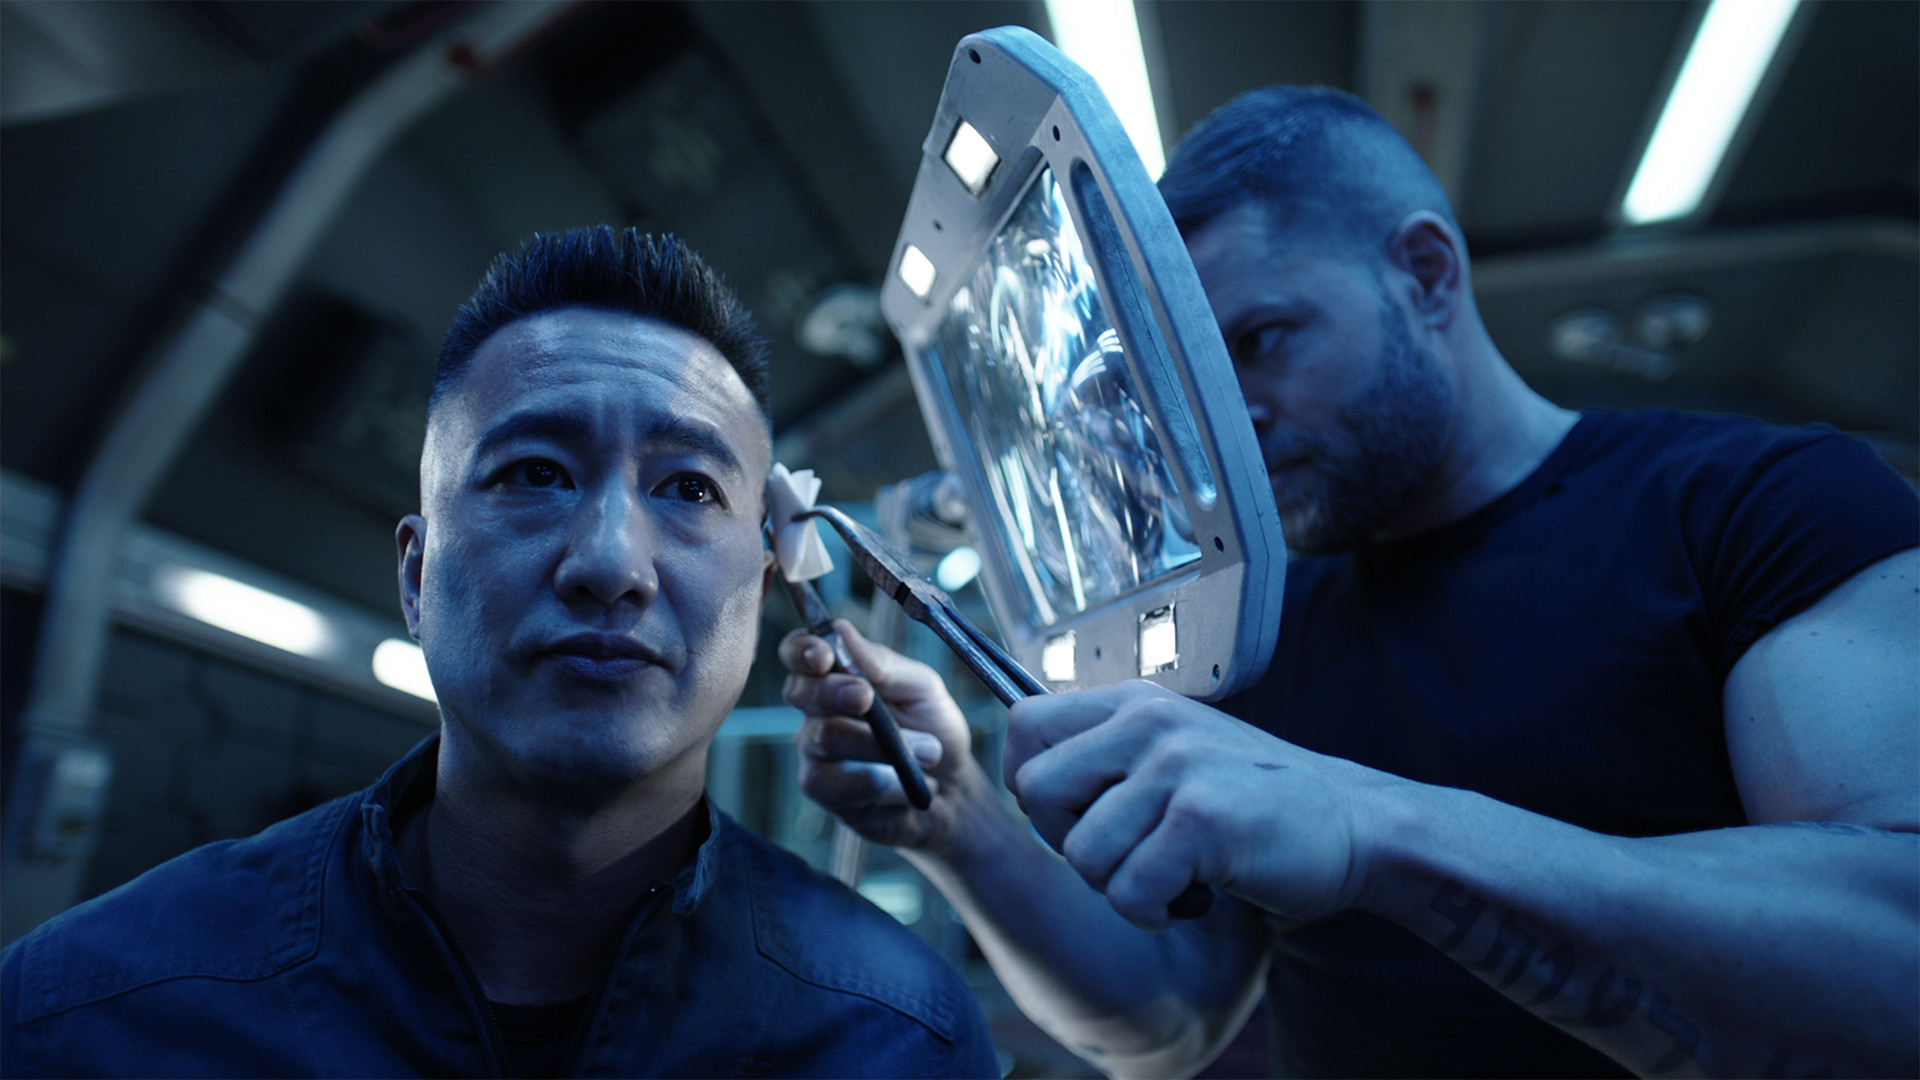 theexpanse_10thoughts_episode303_1.jpg